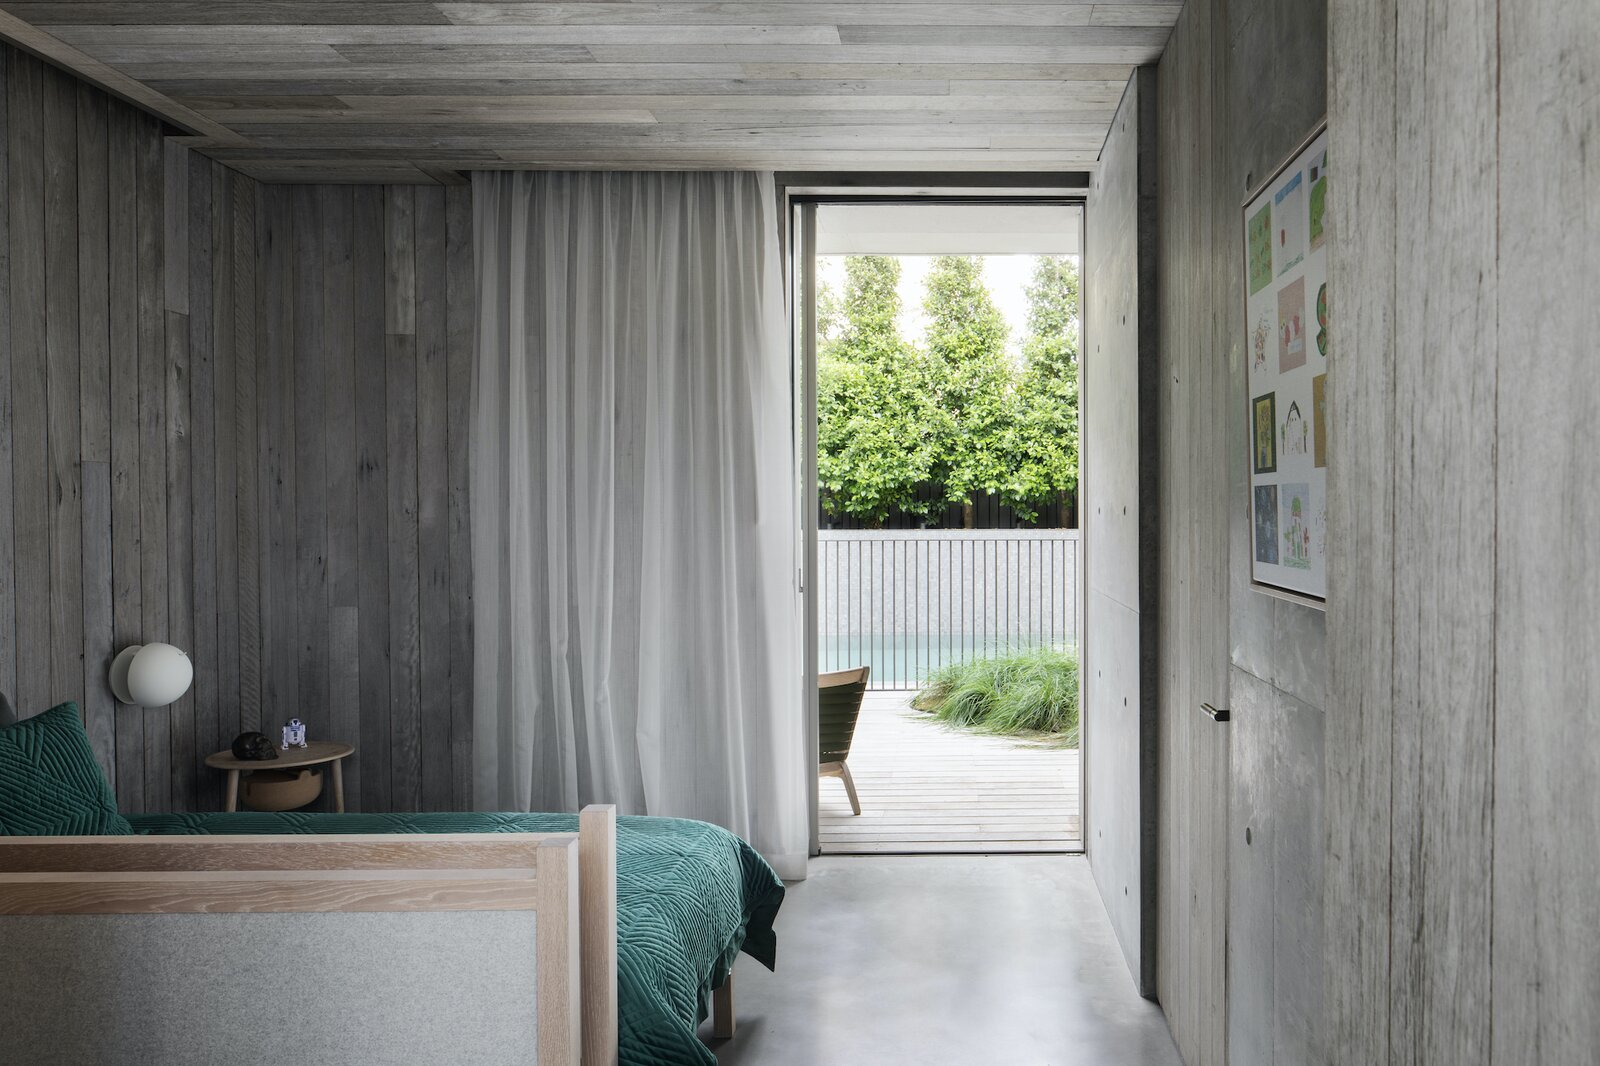 Bedroom of Silver Linings by Rachcoff Vella Architects.